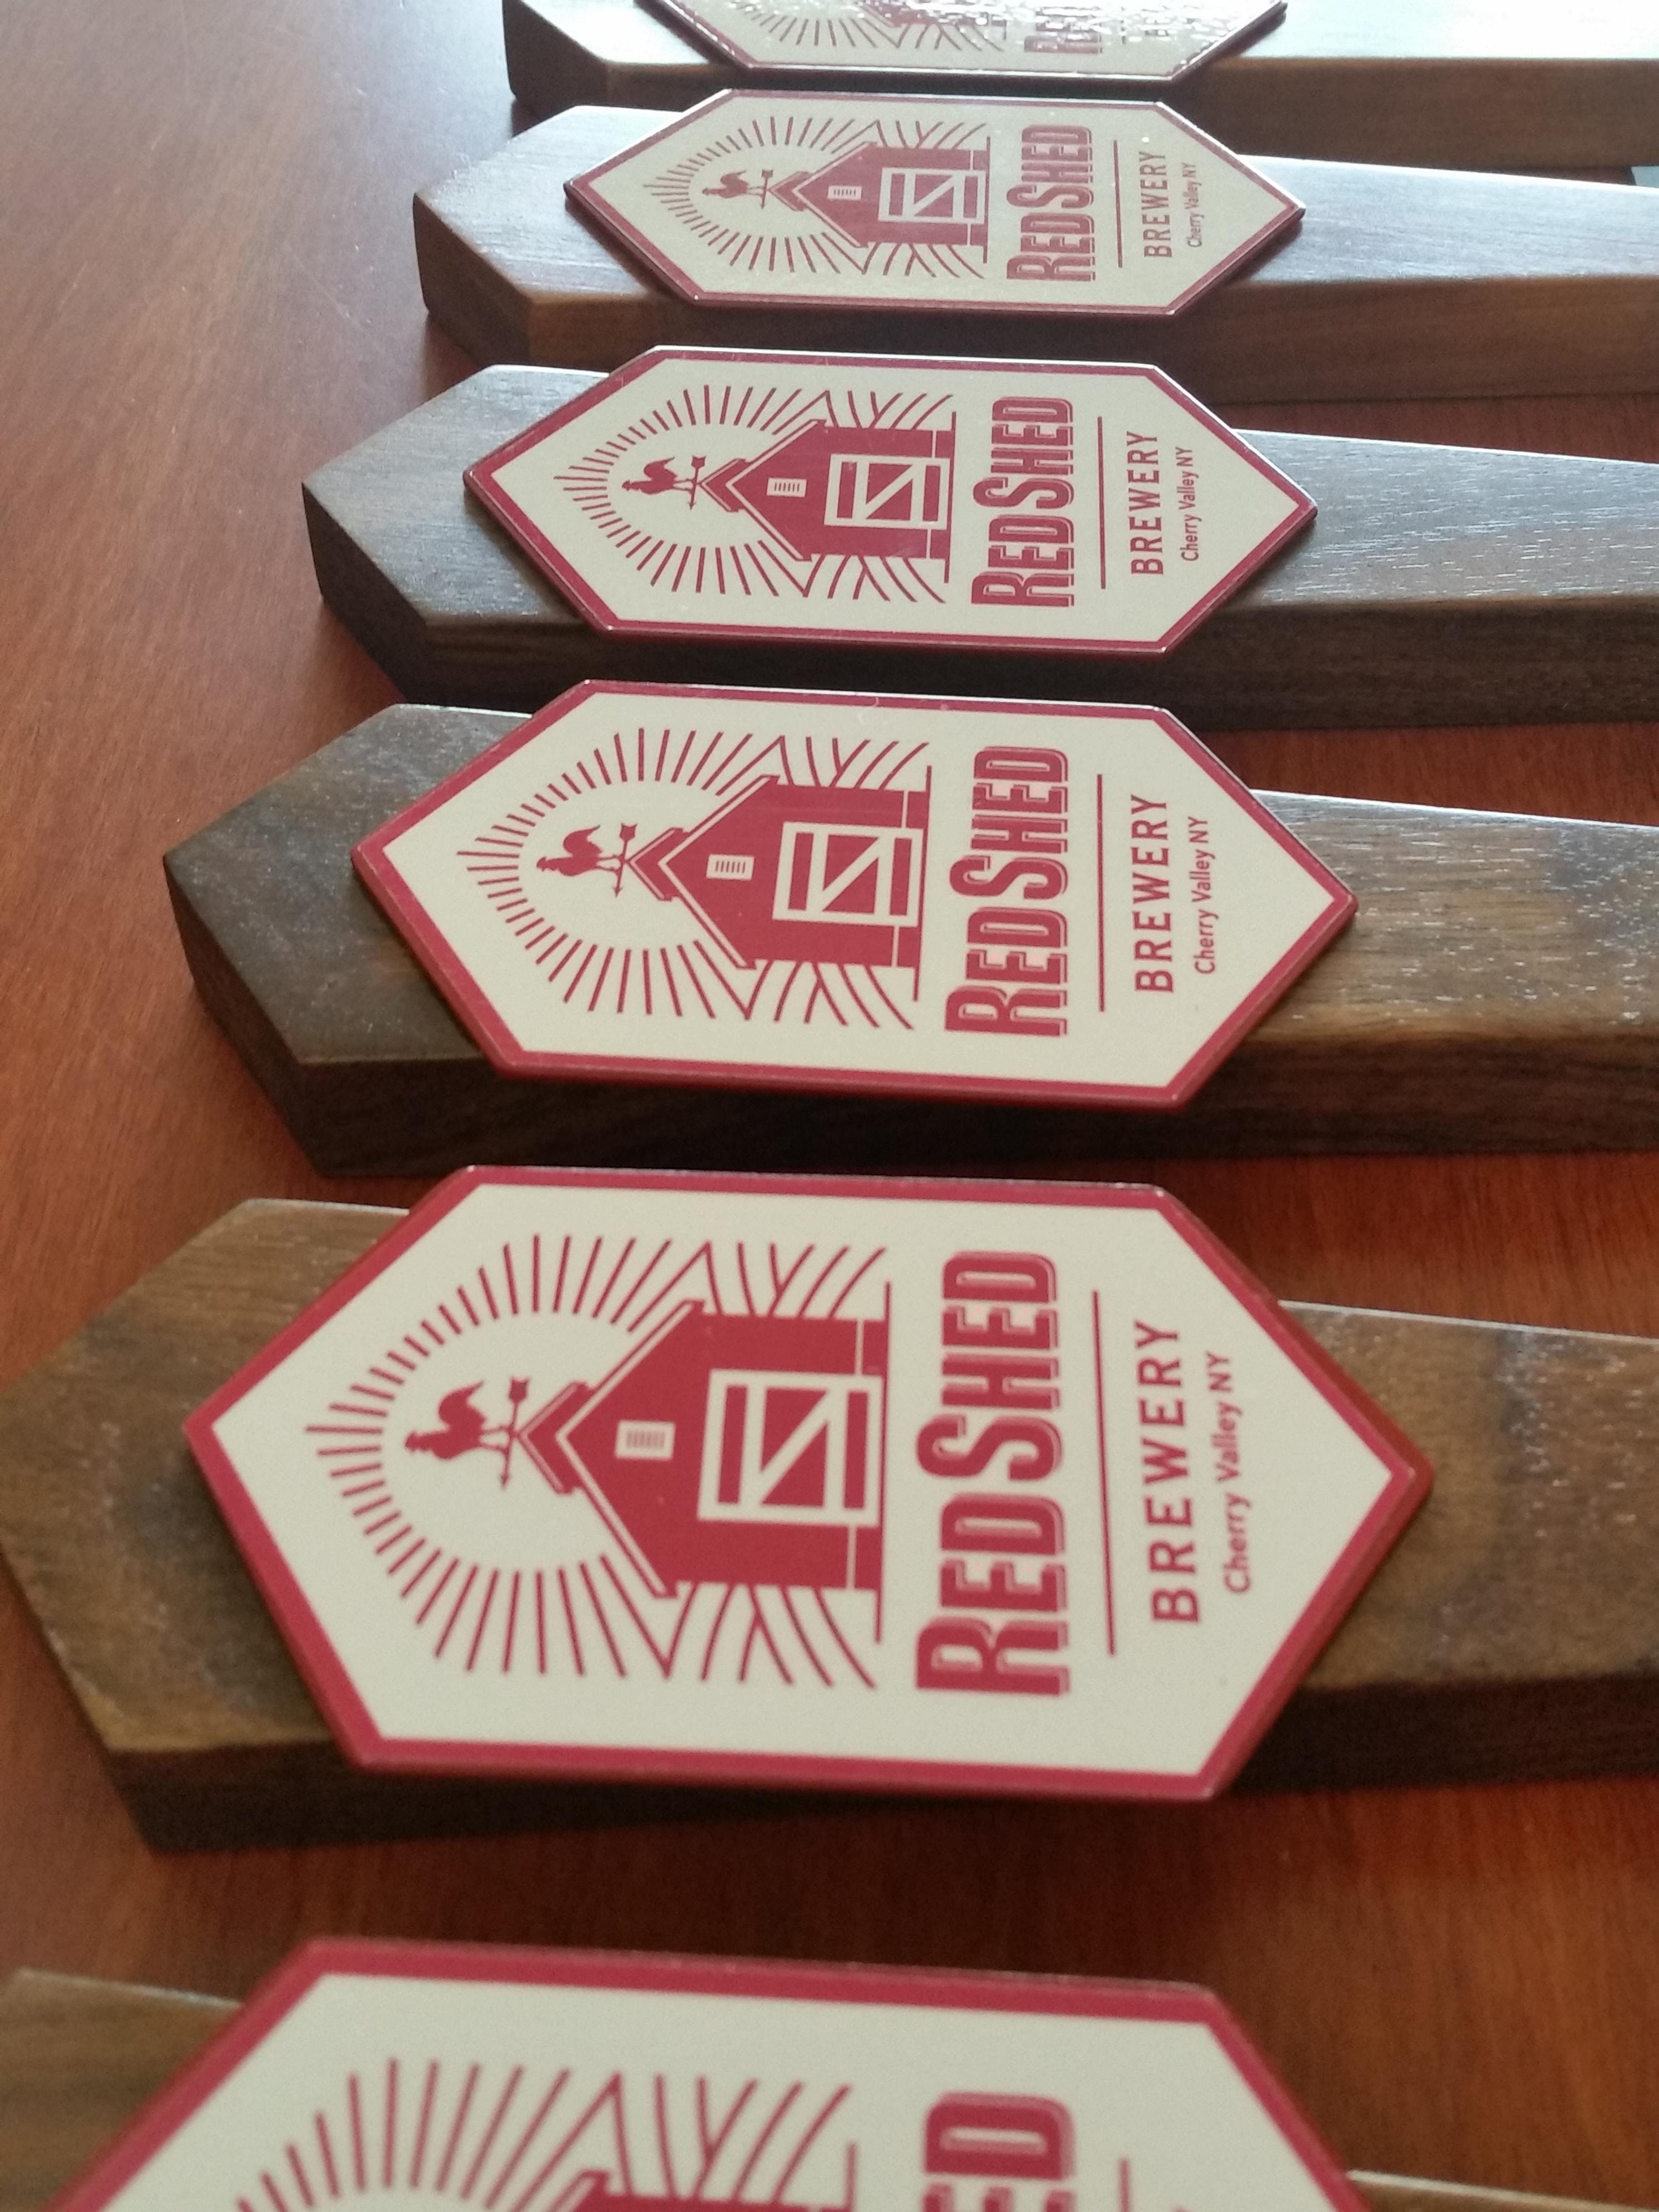 Custom Wood and Metal Tap Handles Tap handle sold by Brewlicious Beer